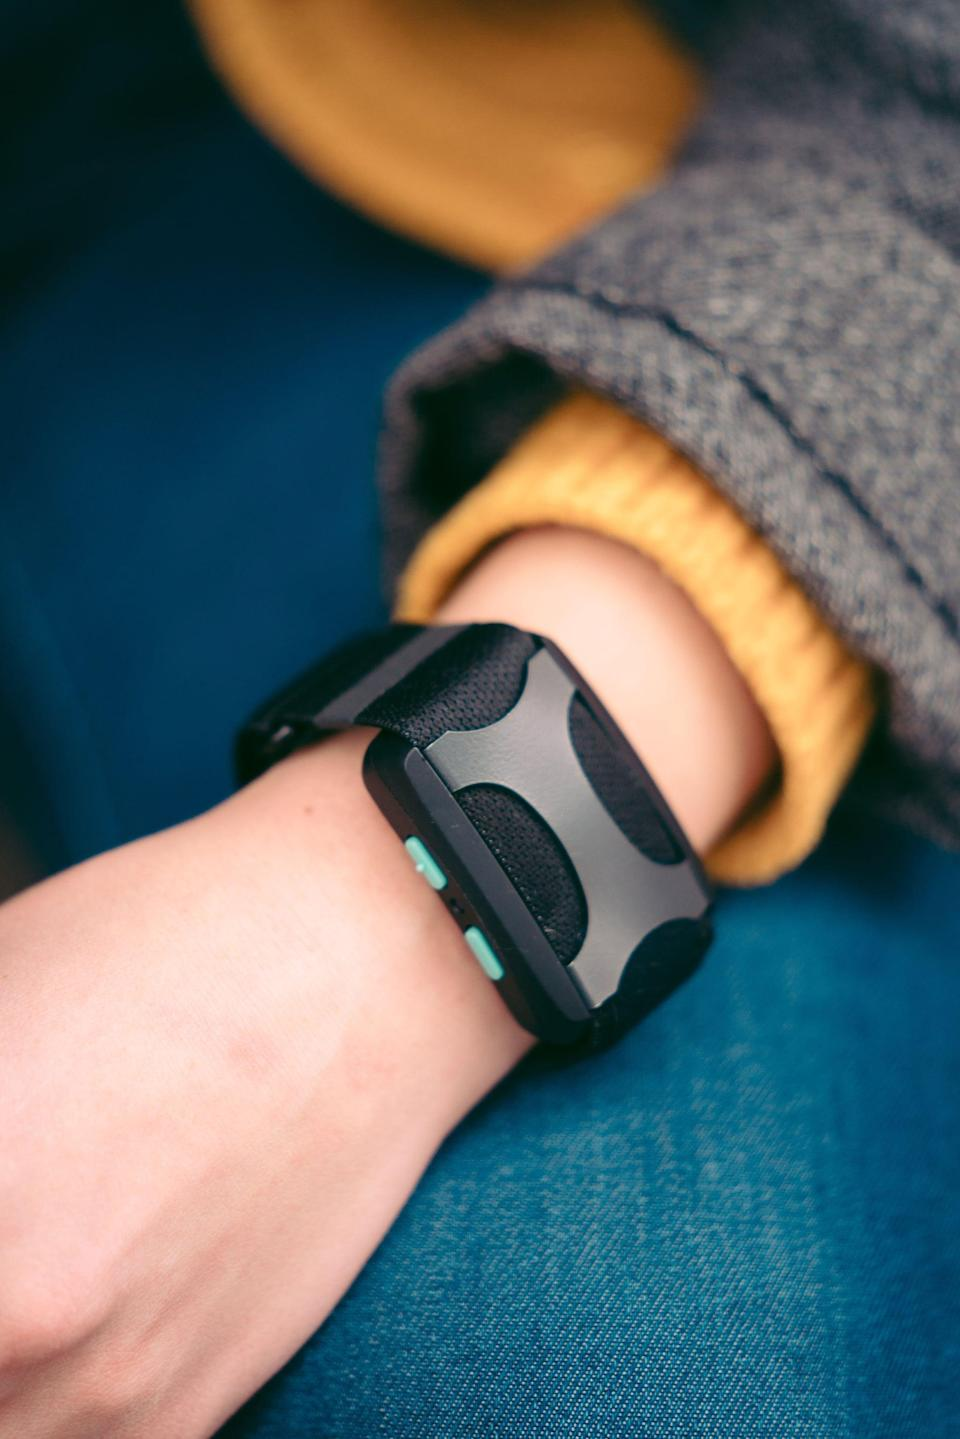 """<p>""""Are your wrists as piled up with fitness watches as mine are? Well, make some room. <span>Apollo Neuro</span> ($349) straps around your wrist like an Apple Watch or Fitbit, but it's not there to count your steps or measure your heart rate. It's a """"wearable wellness device for stress relief,"""" according to the brand's website, aka it's here to help with your mental health, not your calorie burn.</p> <p>To sum it up, Apollo vibrates against your wrist or ankle (areas that are """"highly sensitive"""" due to the number of nerve endings there, Apollo said) to soothe or stimulate your nervous system, which can help you relax or give you energy when you need it. It all runs through a Bluetooth app on your phone, so you choose whatever setting you need at that moment.</p> <p>I wear my Apollo all day and night (except when it needs a charge - usually once every other day, if I use it frequently) and pull up the app whenever I need some kind of mental boost. I use the Focus mode when I need to dial in at work, the Rebuild mode after a workout, the Social mode during meetings or Zooms with my friends, and the Energy mode when I'm feeling groggy in the morning. I love the relax mode for decompressing after work. The sleep mode, though, is the one I use the most. I never forget to turn it on. I haven't struggled to fall asleep once since I started using it - it just feels like a soothing hum against my ankle that helps me drift right off. (I wear the Apollo on my ankle for the Sleep mode, as the brand recommends, and on my wrist the rest of the time.) After two months of using Apollo Neuro, I can tell you I'm a big fan."""" - Maggie Ryan, assistant editor, fitness</p> <p>Read the full <a href=""""https://www.popsugar.com/fitness/apollo-neuro-review-48188072"""" class=""""link rapid-noclick-resp"""" rel=""""nofollow noopener"""" target=""""_blank"""" data-ylk=""""slk:Apollo Neuro review"""">Apollo Neuro review</a>.</p>"""